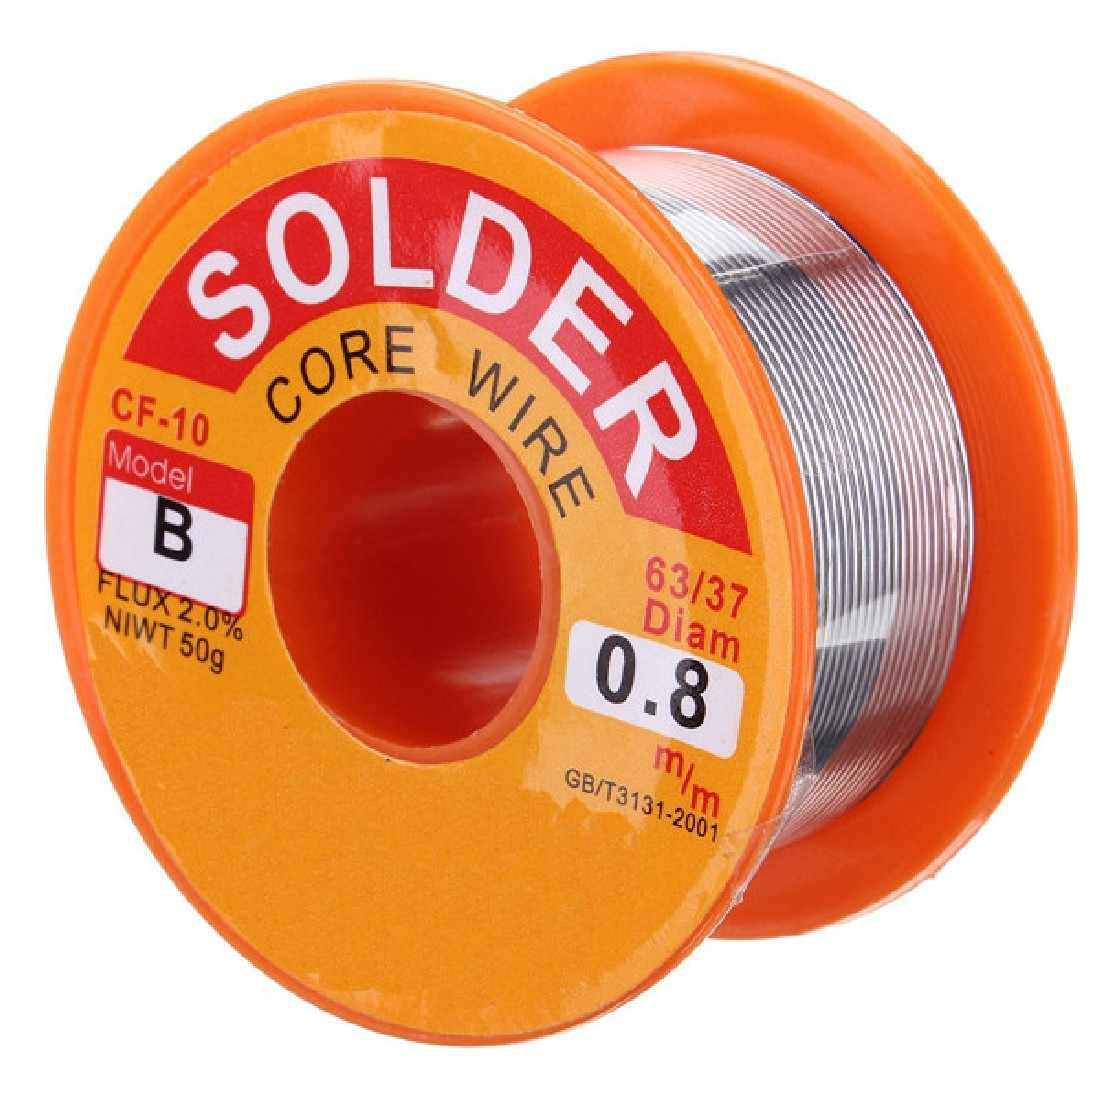 Useful No-clean Tin 0.8mm Tin/Lead 0.8mm Alloy Rosin Roll Flux Solder Wire Reel Welding Line Solder Wire Clean